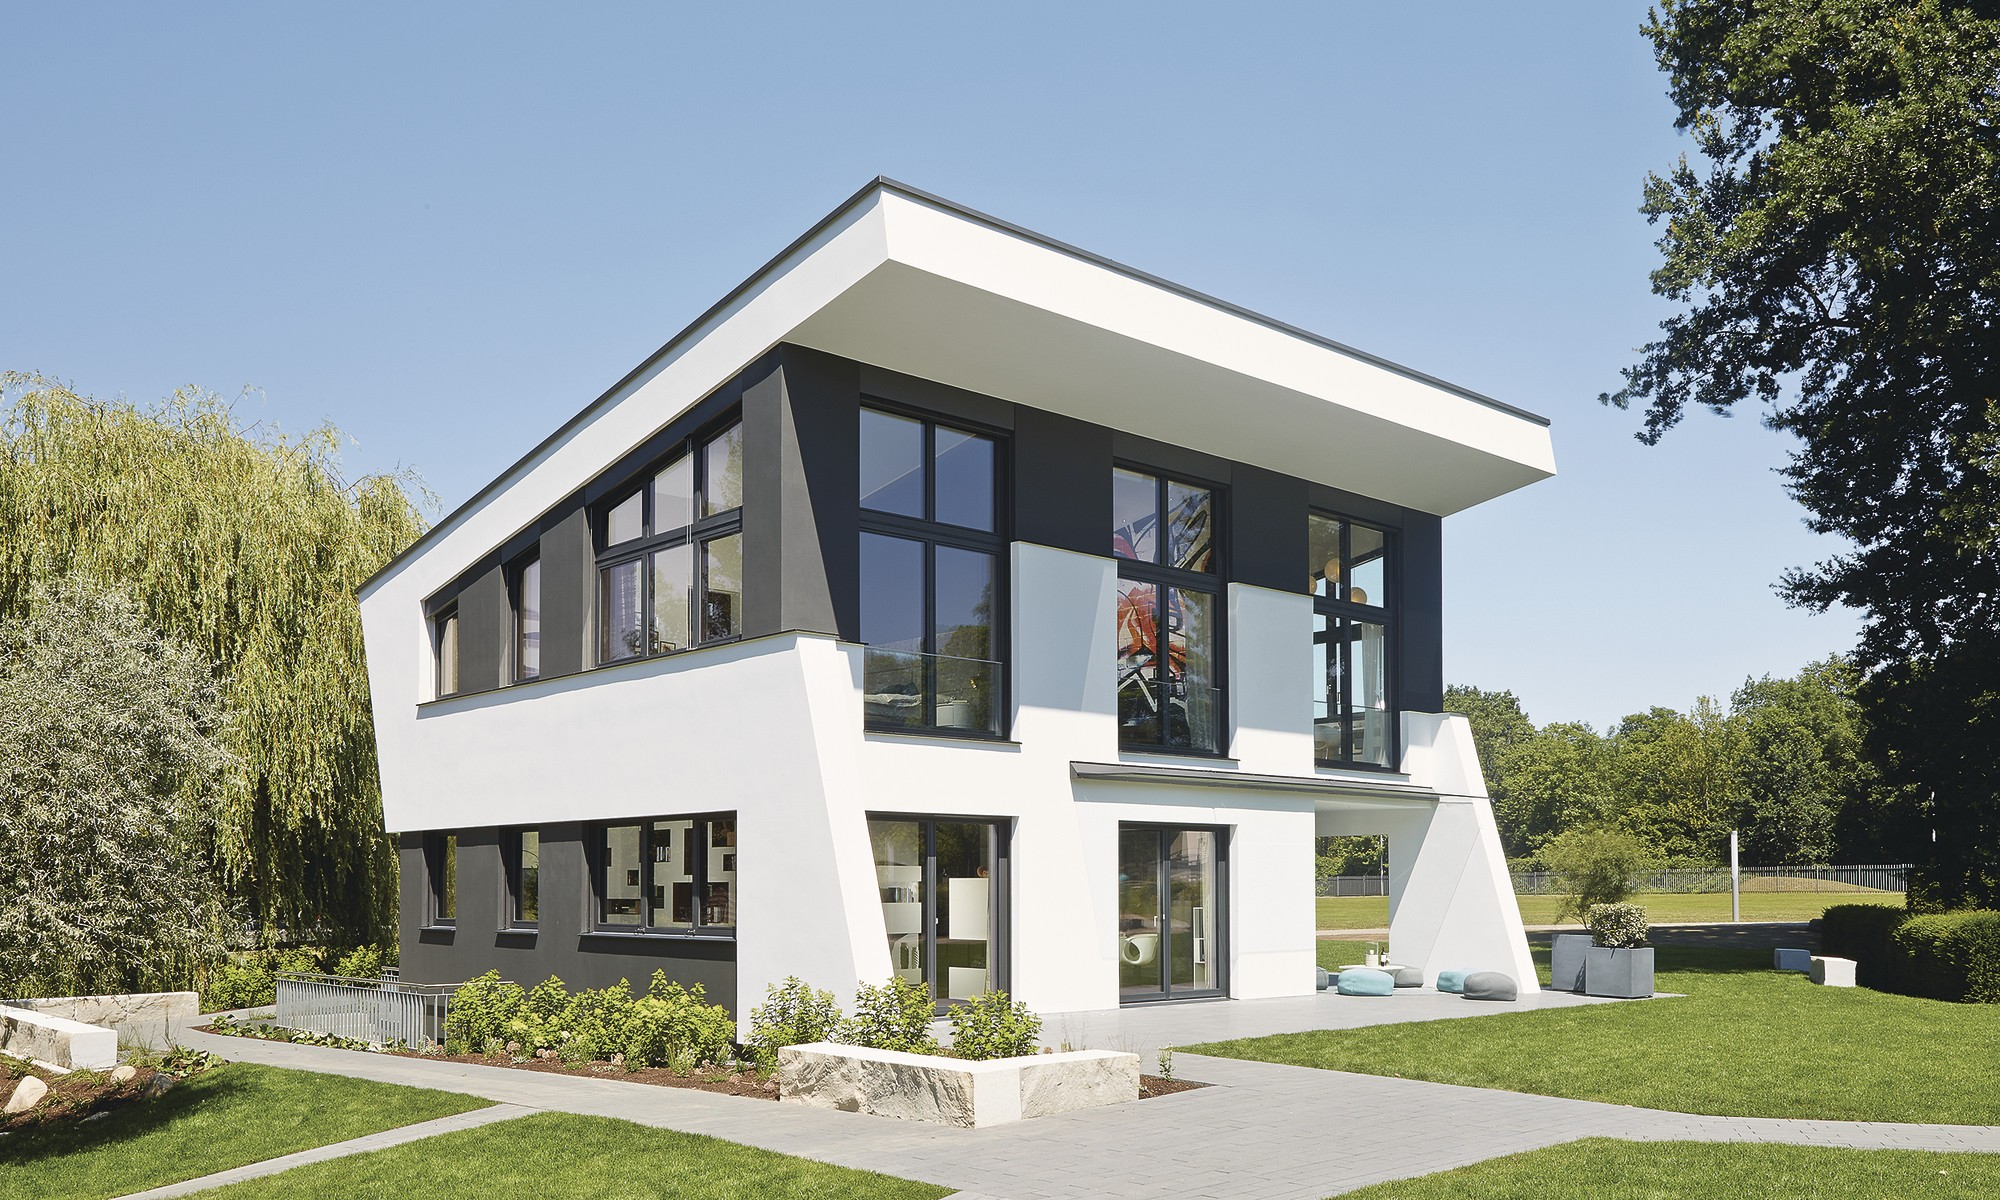 Ultra modern prefabricated house architecture